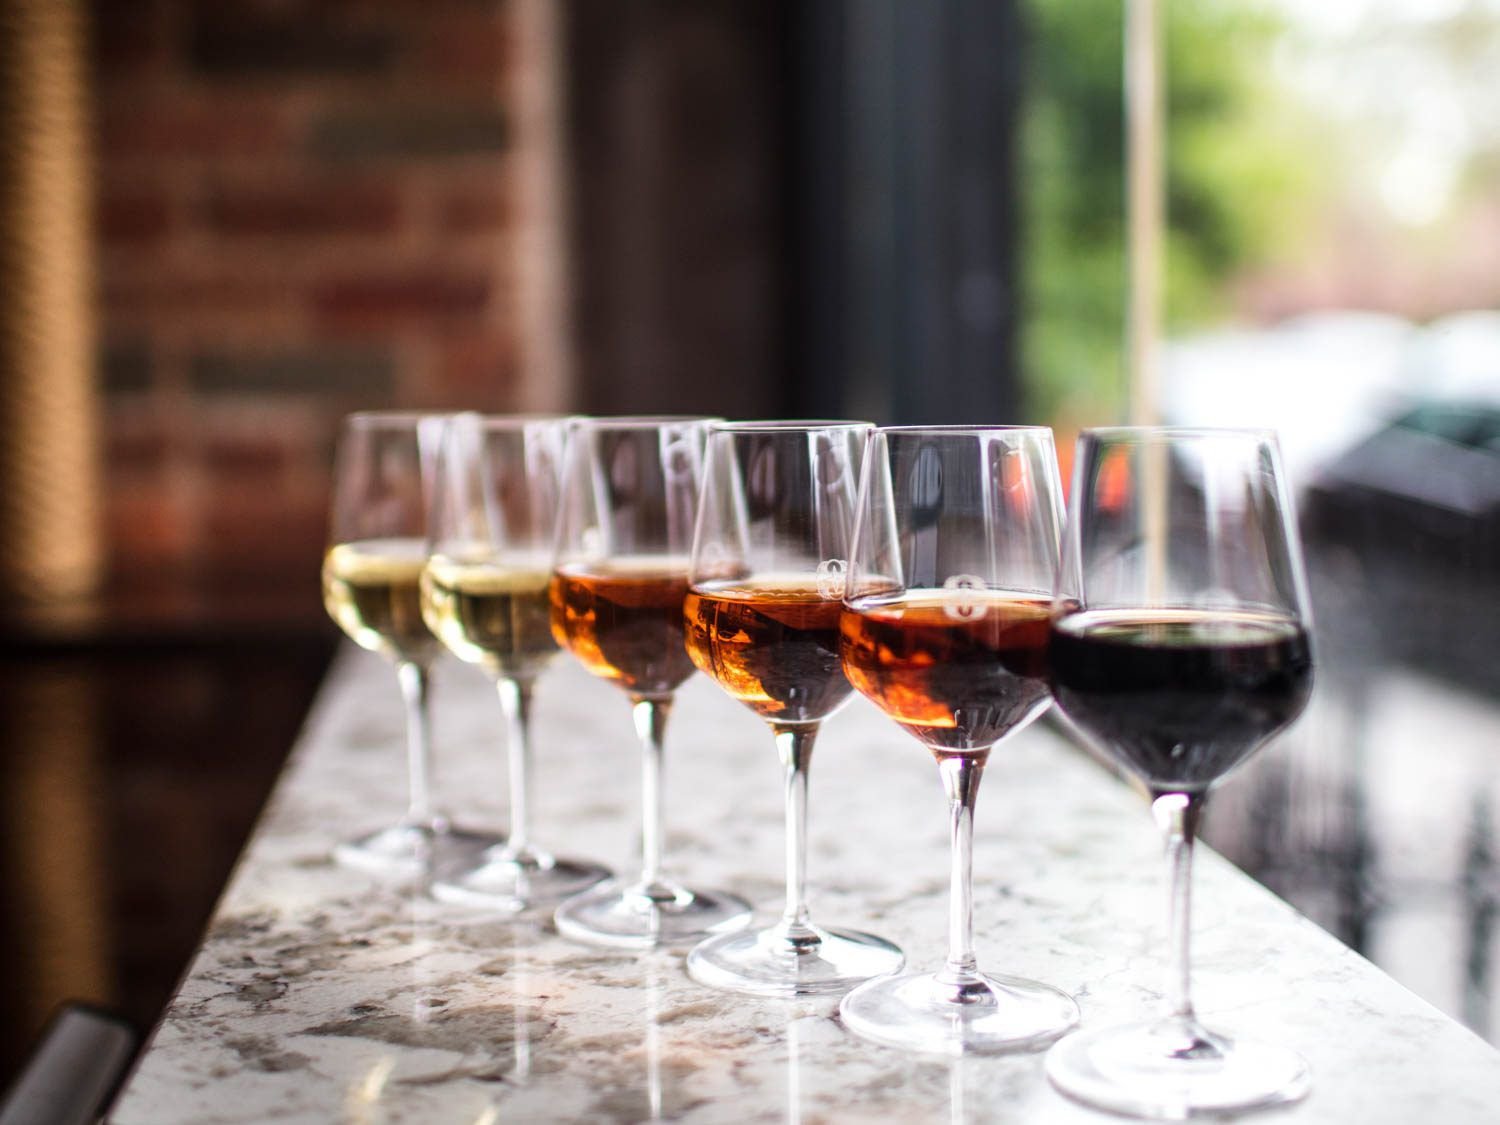 A diagonal line of wineglasses containing a range of sherries, from light to dark, on a marble countertop